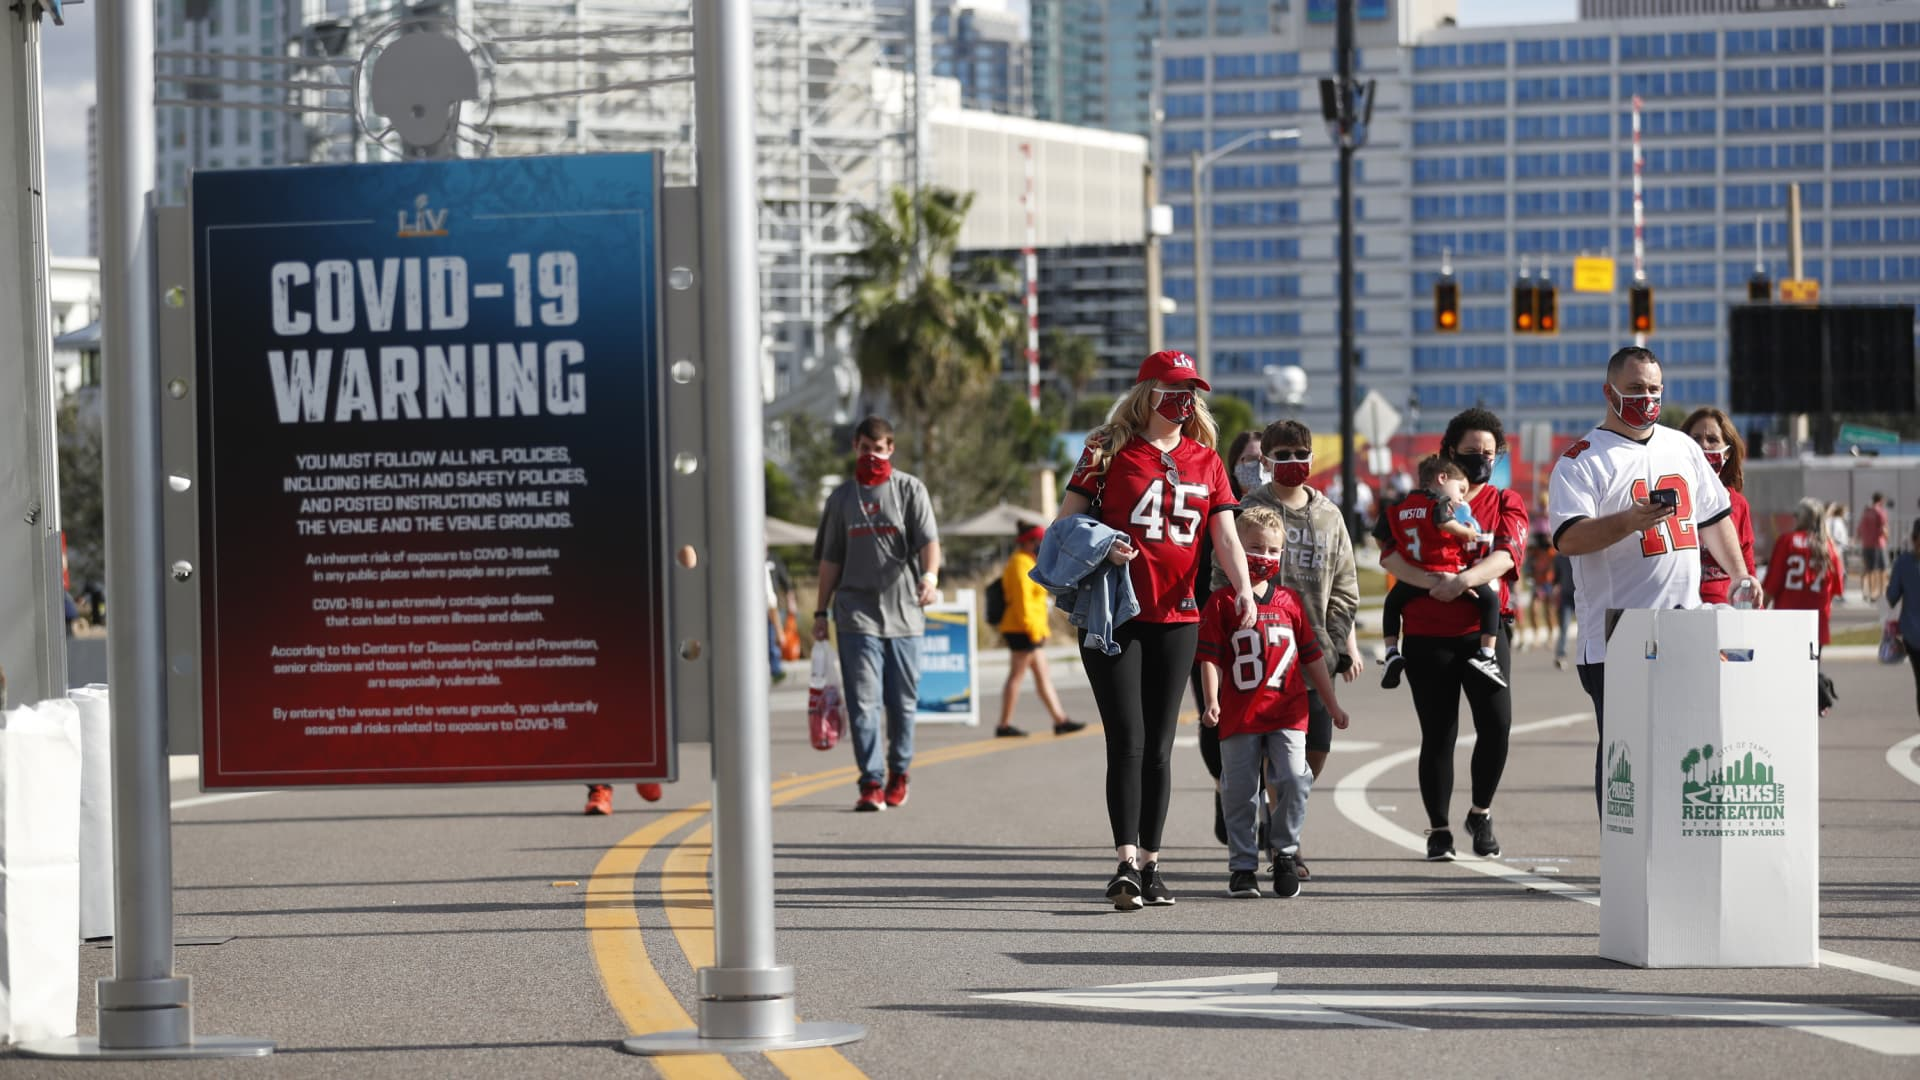 National Football League fans convene in downtown Tampa ahead of Super Bowl LV during the COVID-19 pandemic on January 30, 2021 in Tampa, Florida.